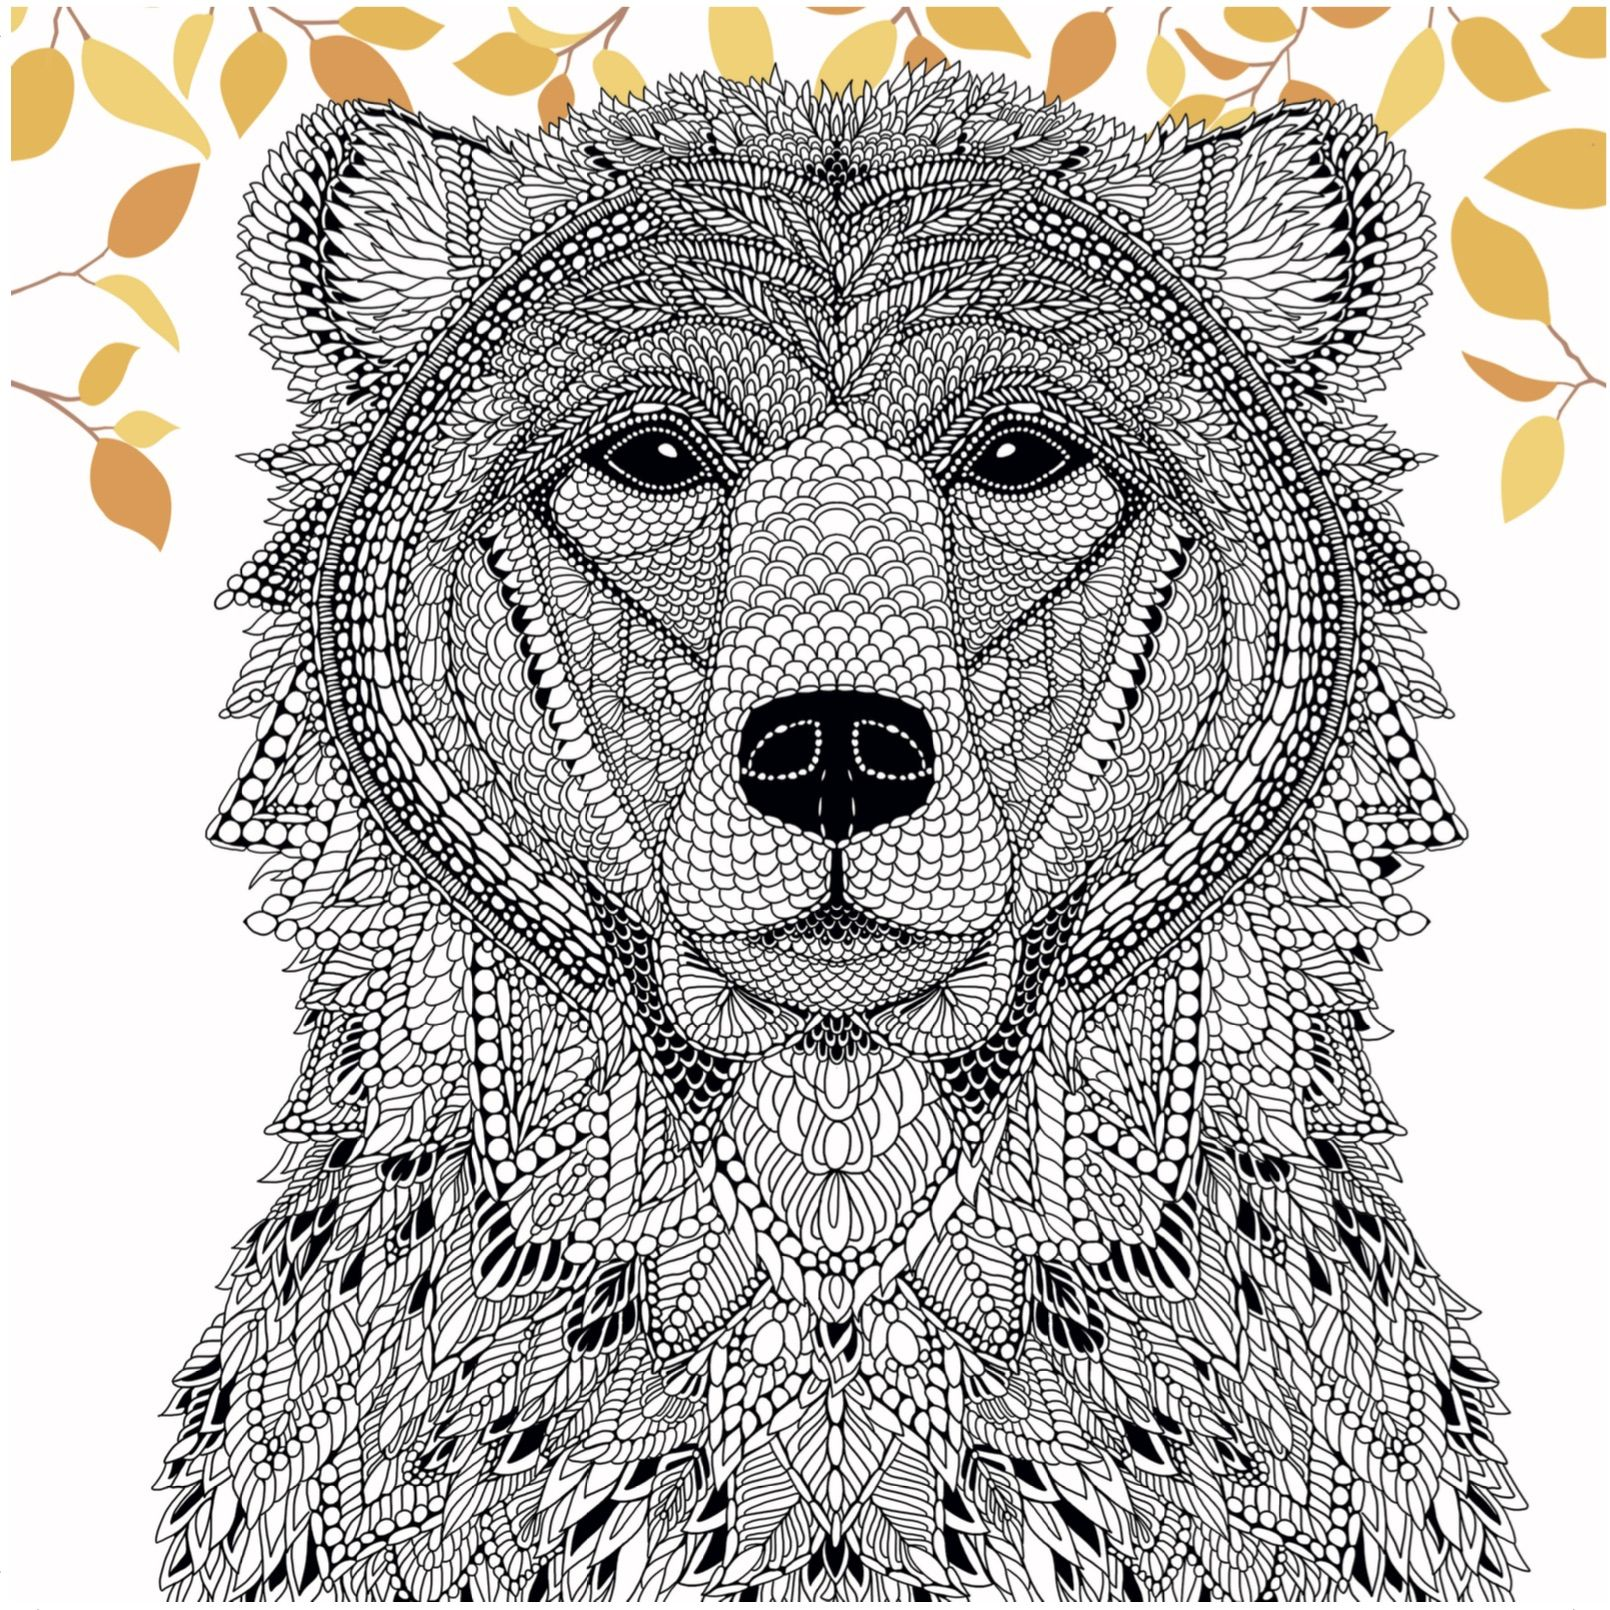 color a bear from the menagerie free coloring page